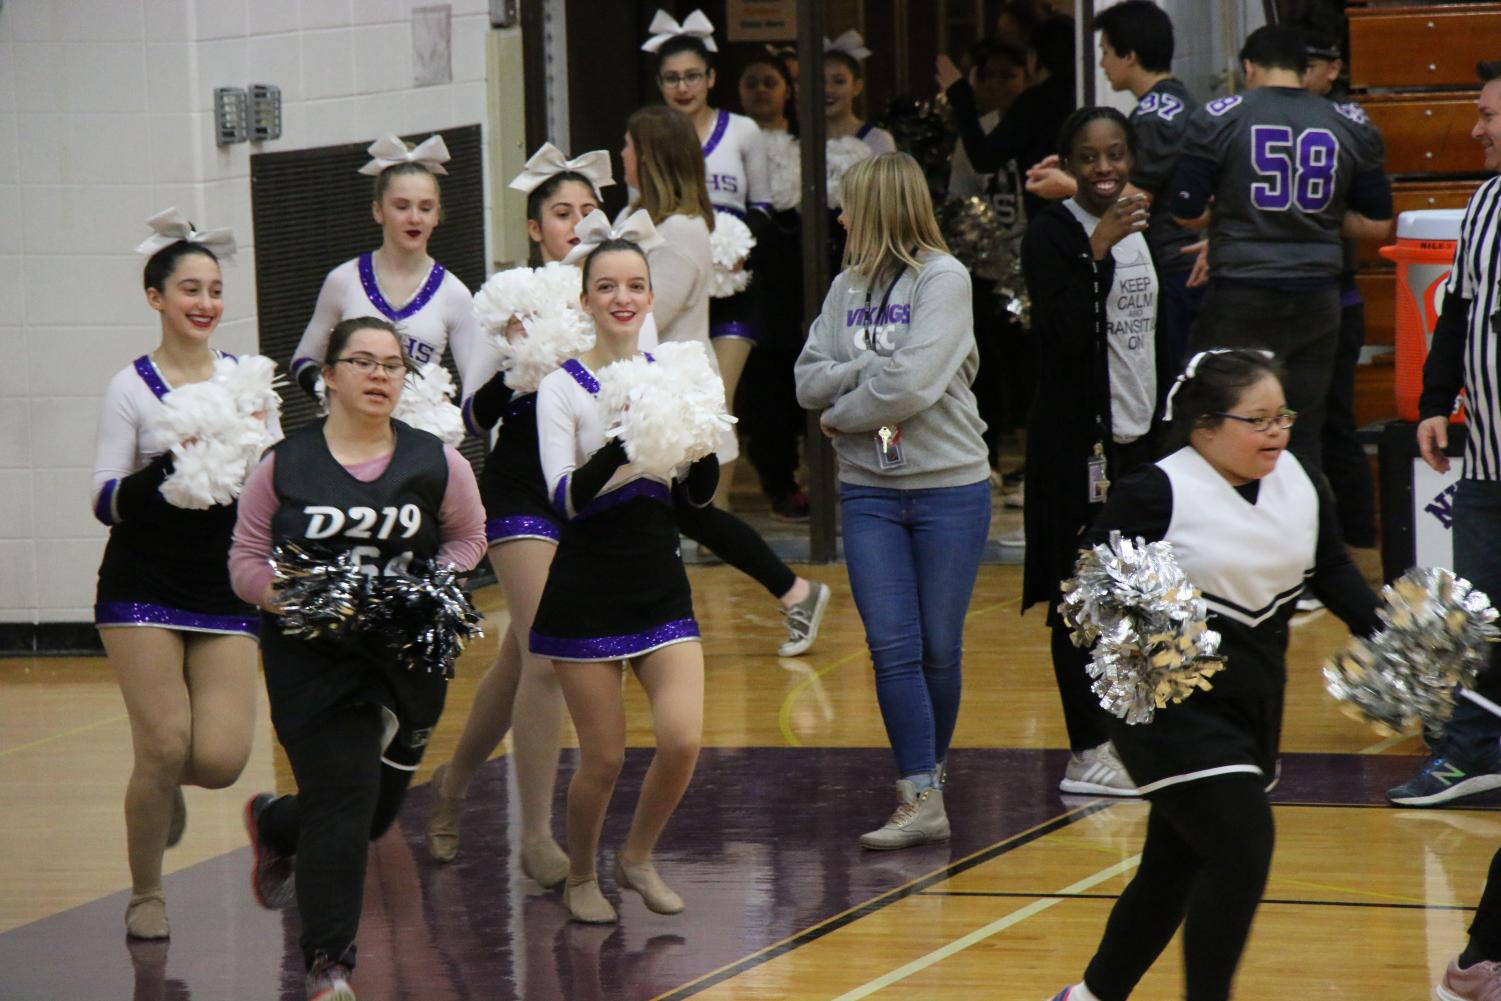 Niles+North+cheerleaders+leading+the+CEC+cheerleaders+to+their+spots+on+the+court+before+their+halftime+dance.